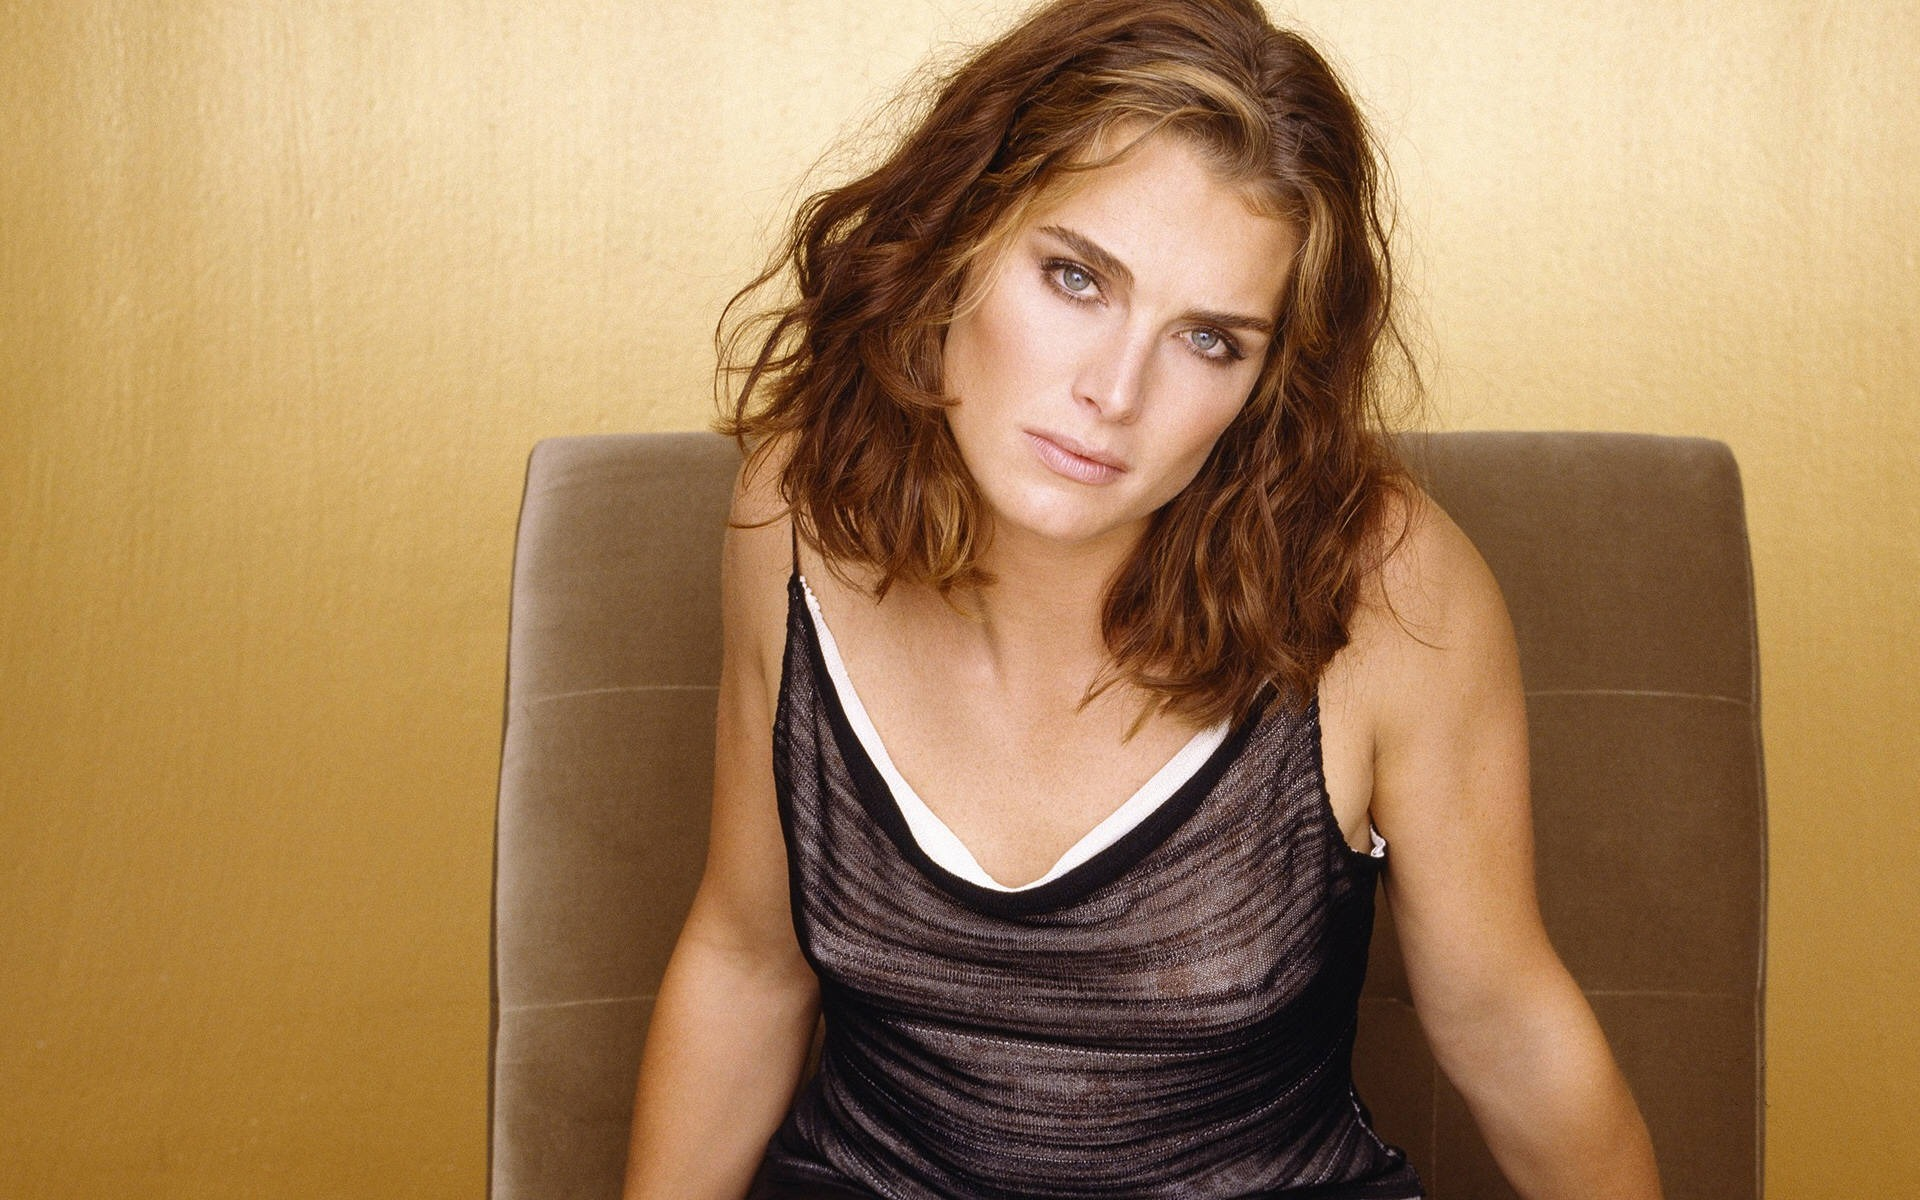 Brooke Shields #024 - 1920x1200 Wallpapers Pictures Photos Images